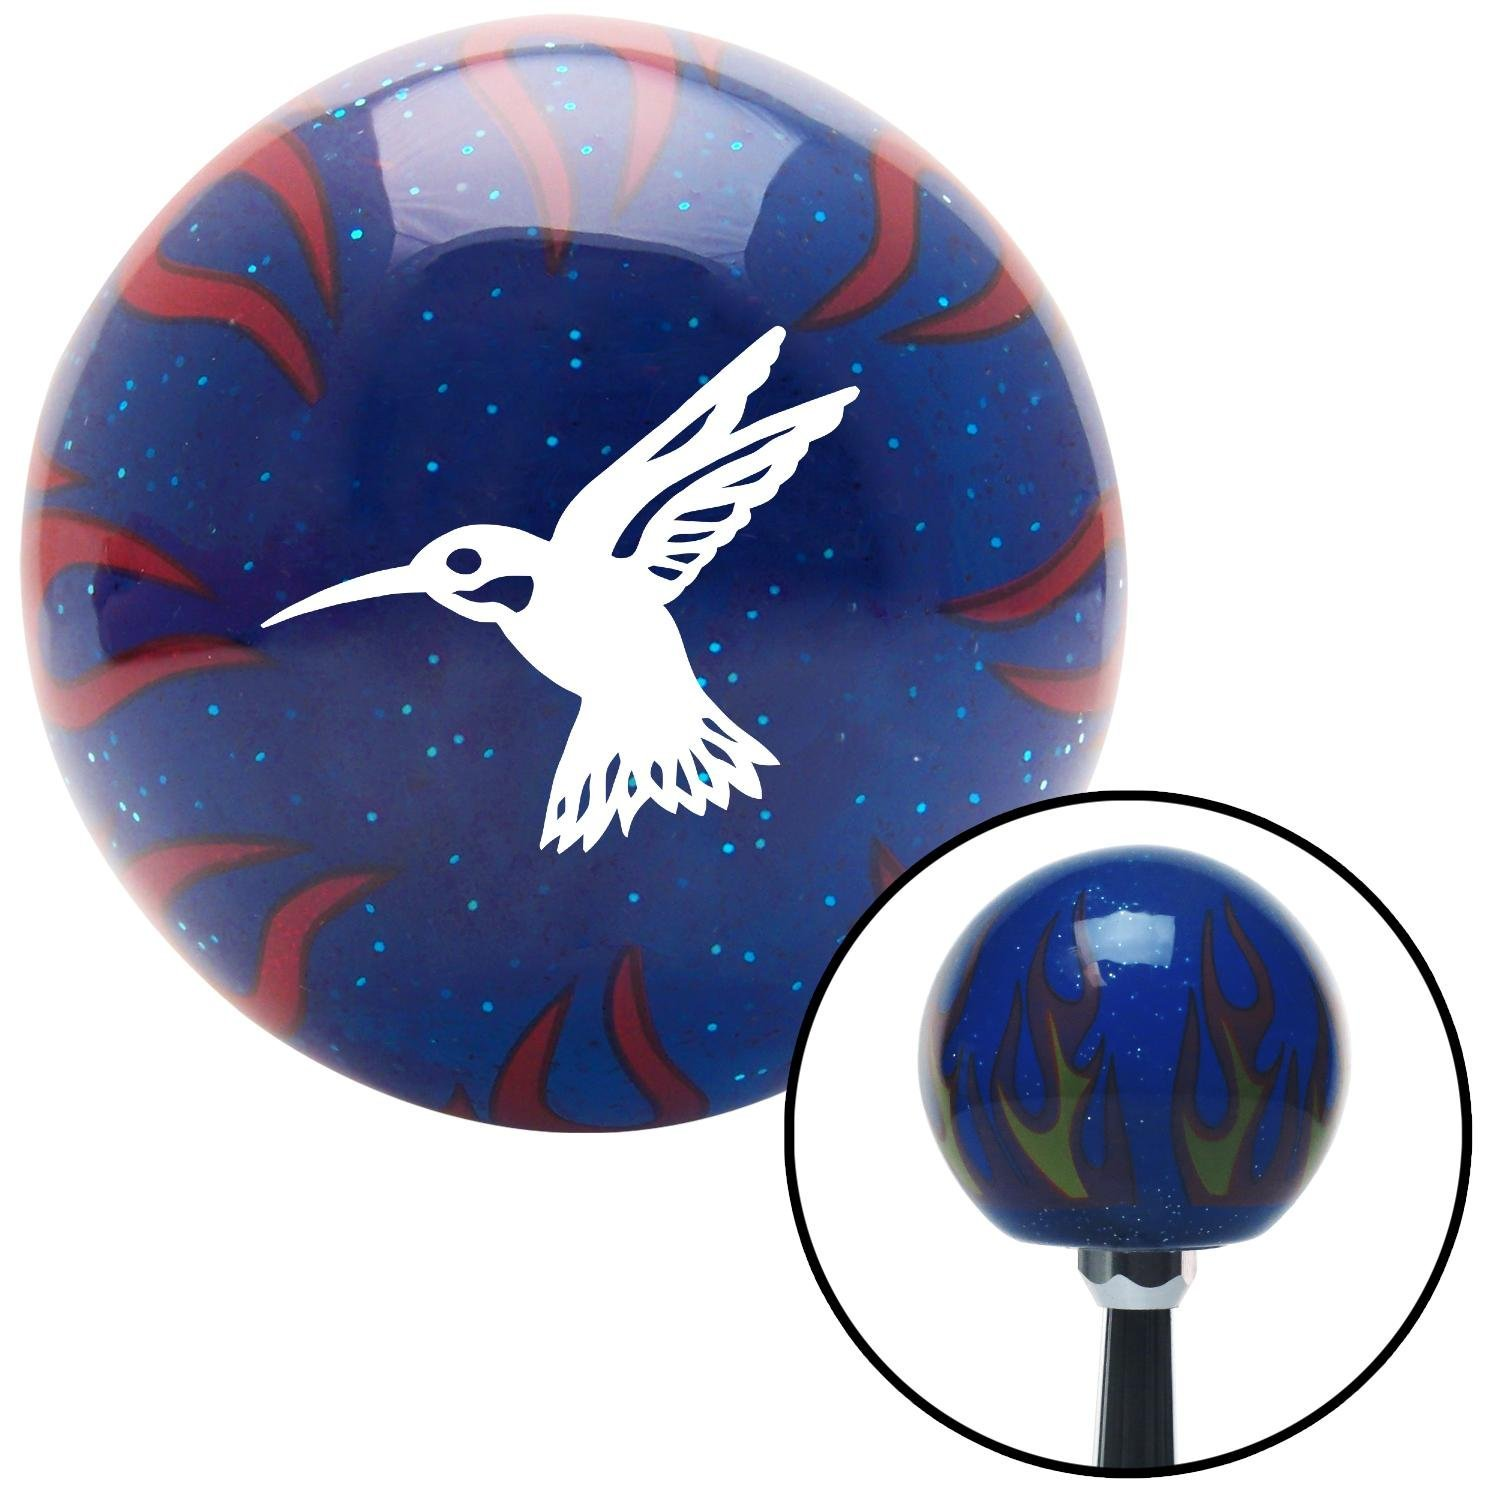 White Hummingbird American Shifter 244217 Blue Flame Metal Flake Shift Knob with M16 x 1.5 Insert